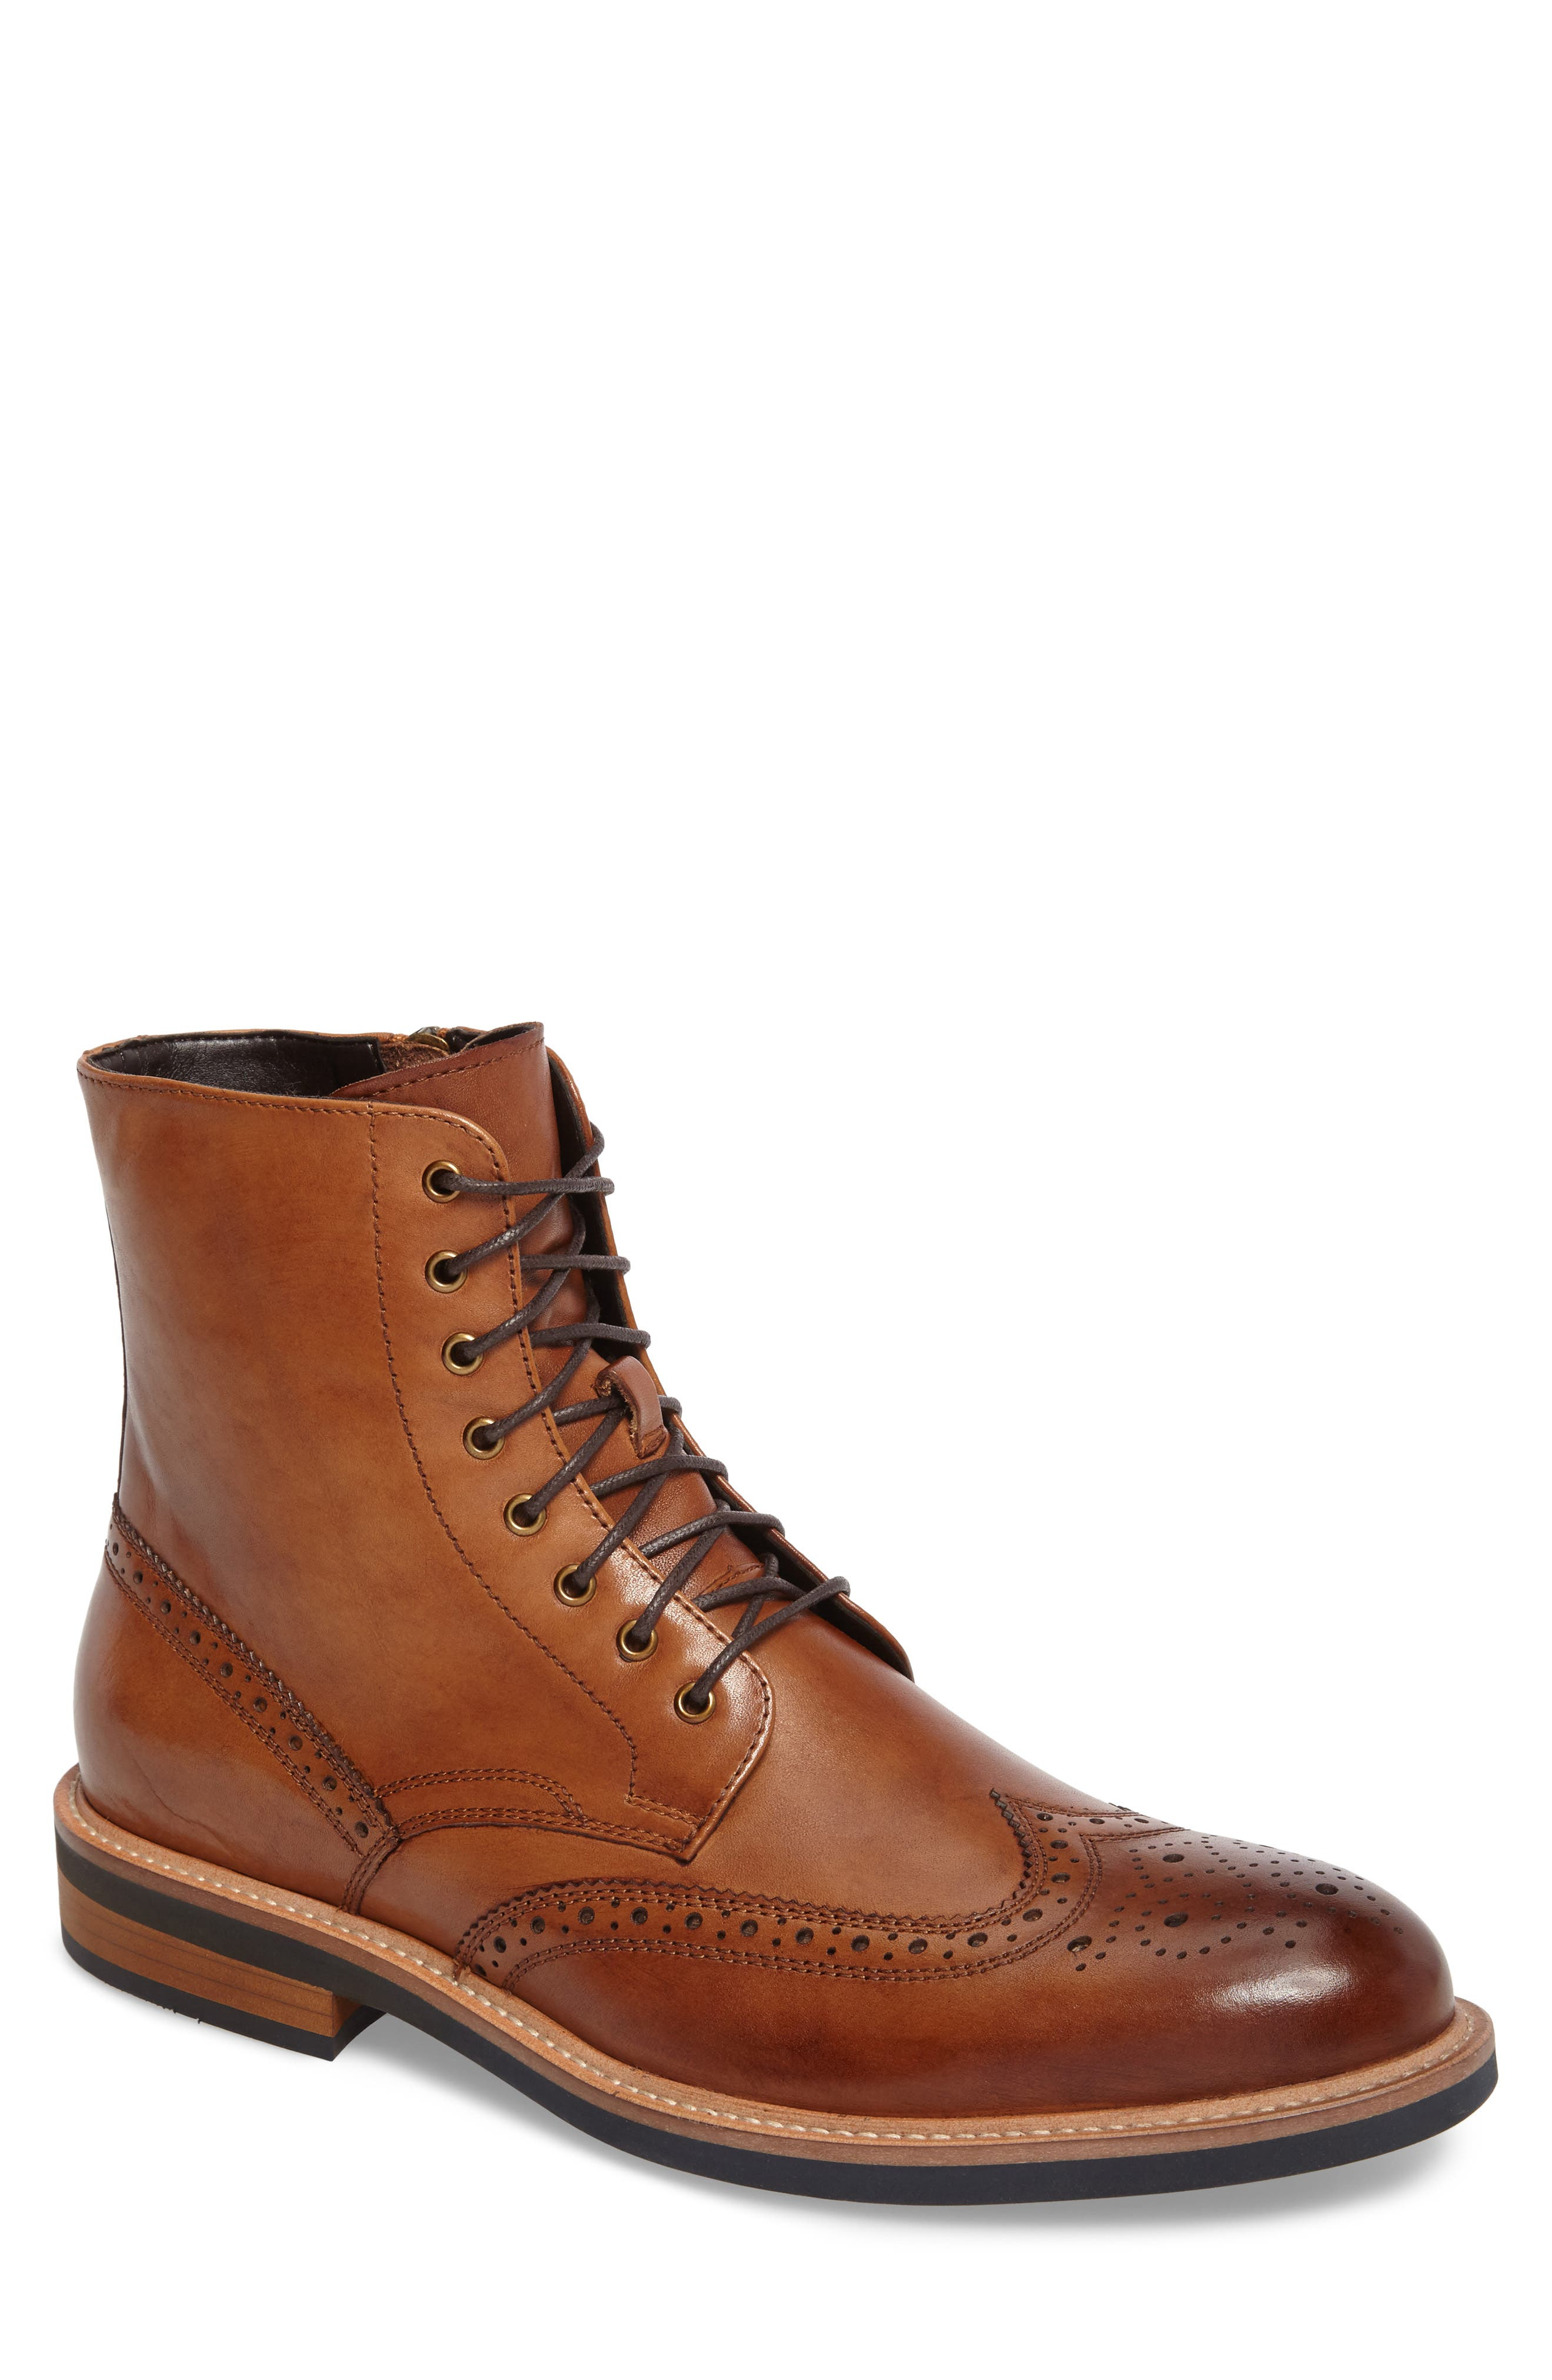 Kenneth Cole Reaction Wingtip Boot,                         Main,                         color,